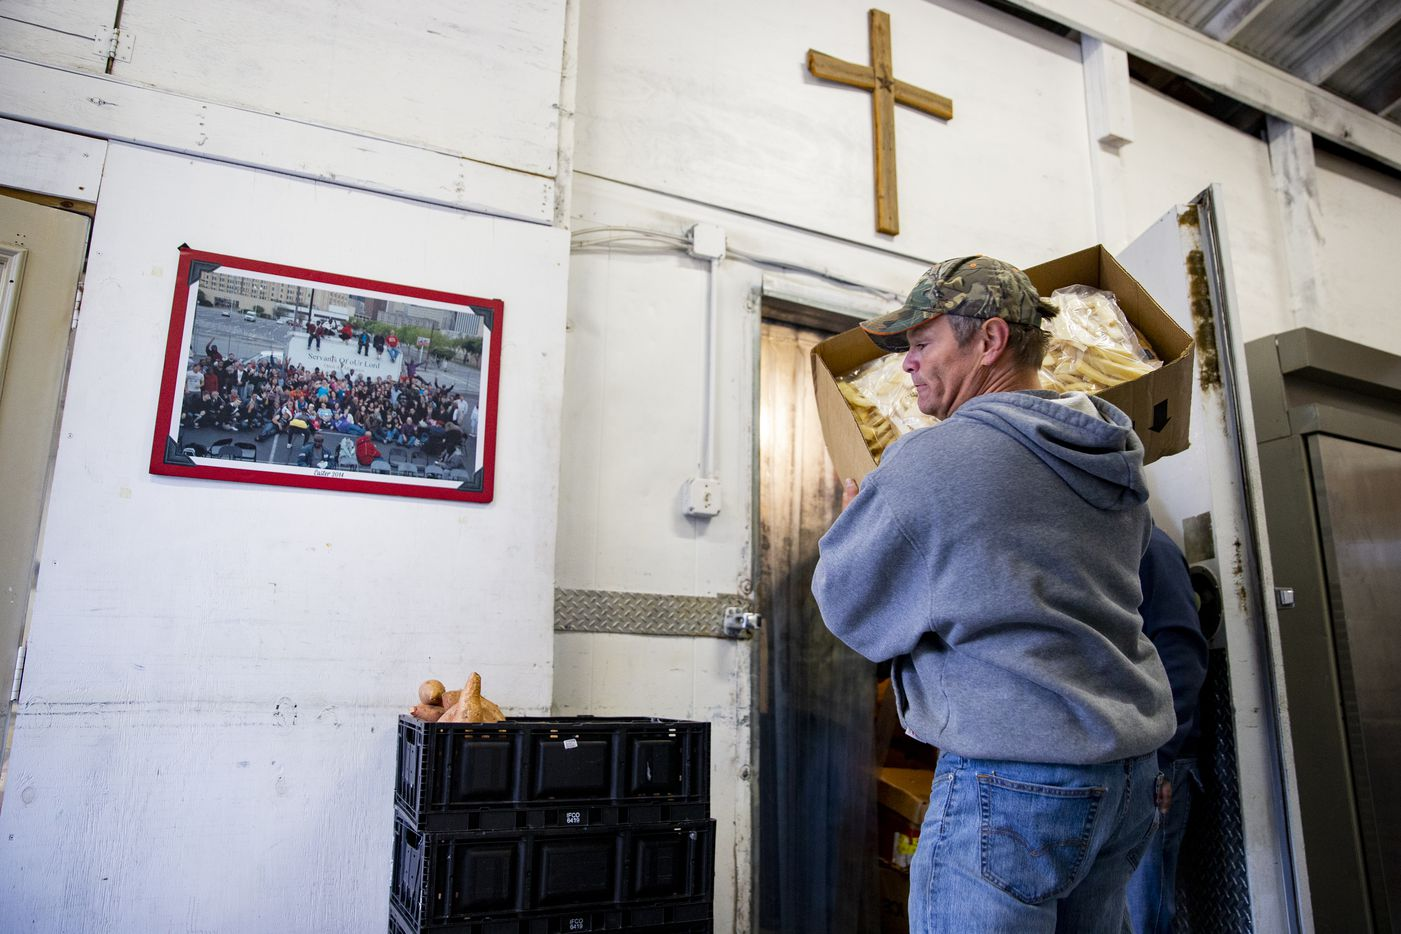 A volunteer with Victory Life Ministry helped distribute food to local faith leaders from Jennifer and Leon Birdd's food pantry in their Mesquite backyard on Dec. 20, 2019. Faith leaders used the donated food to help feed their communities.